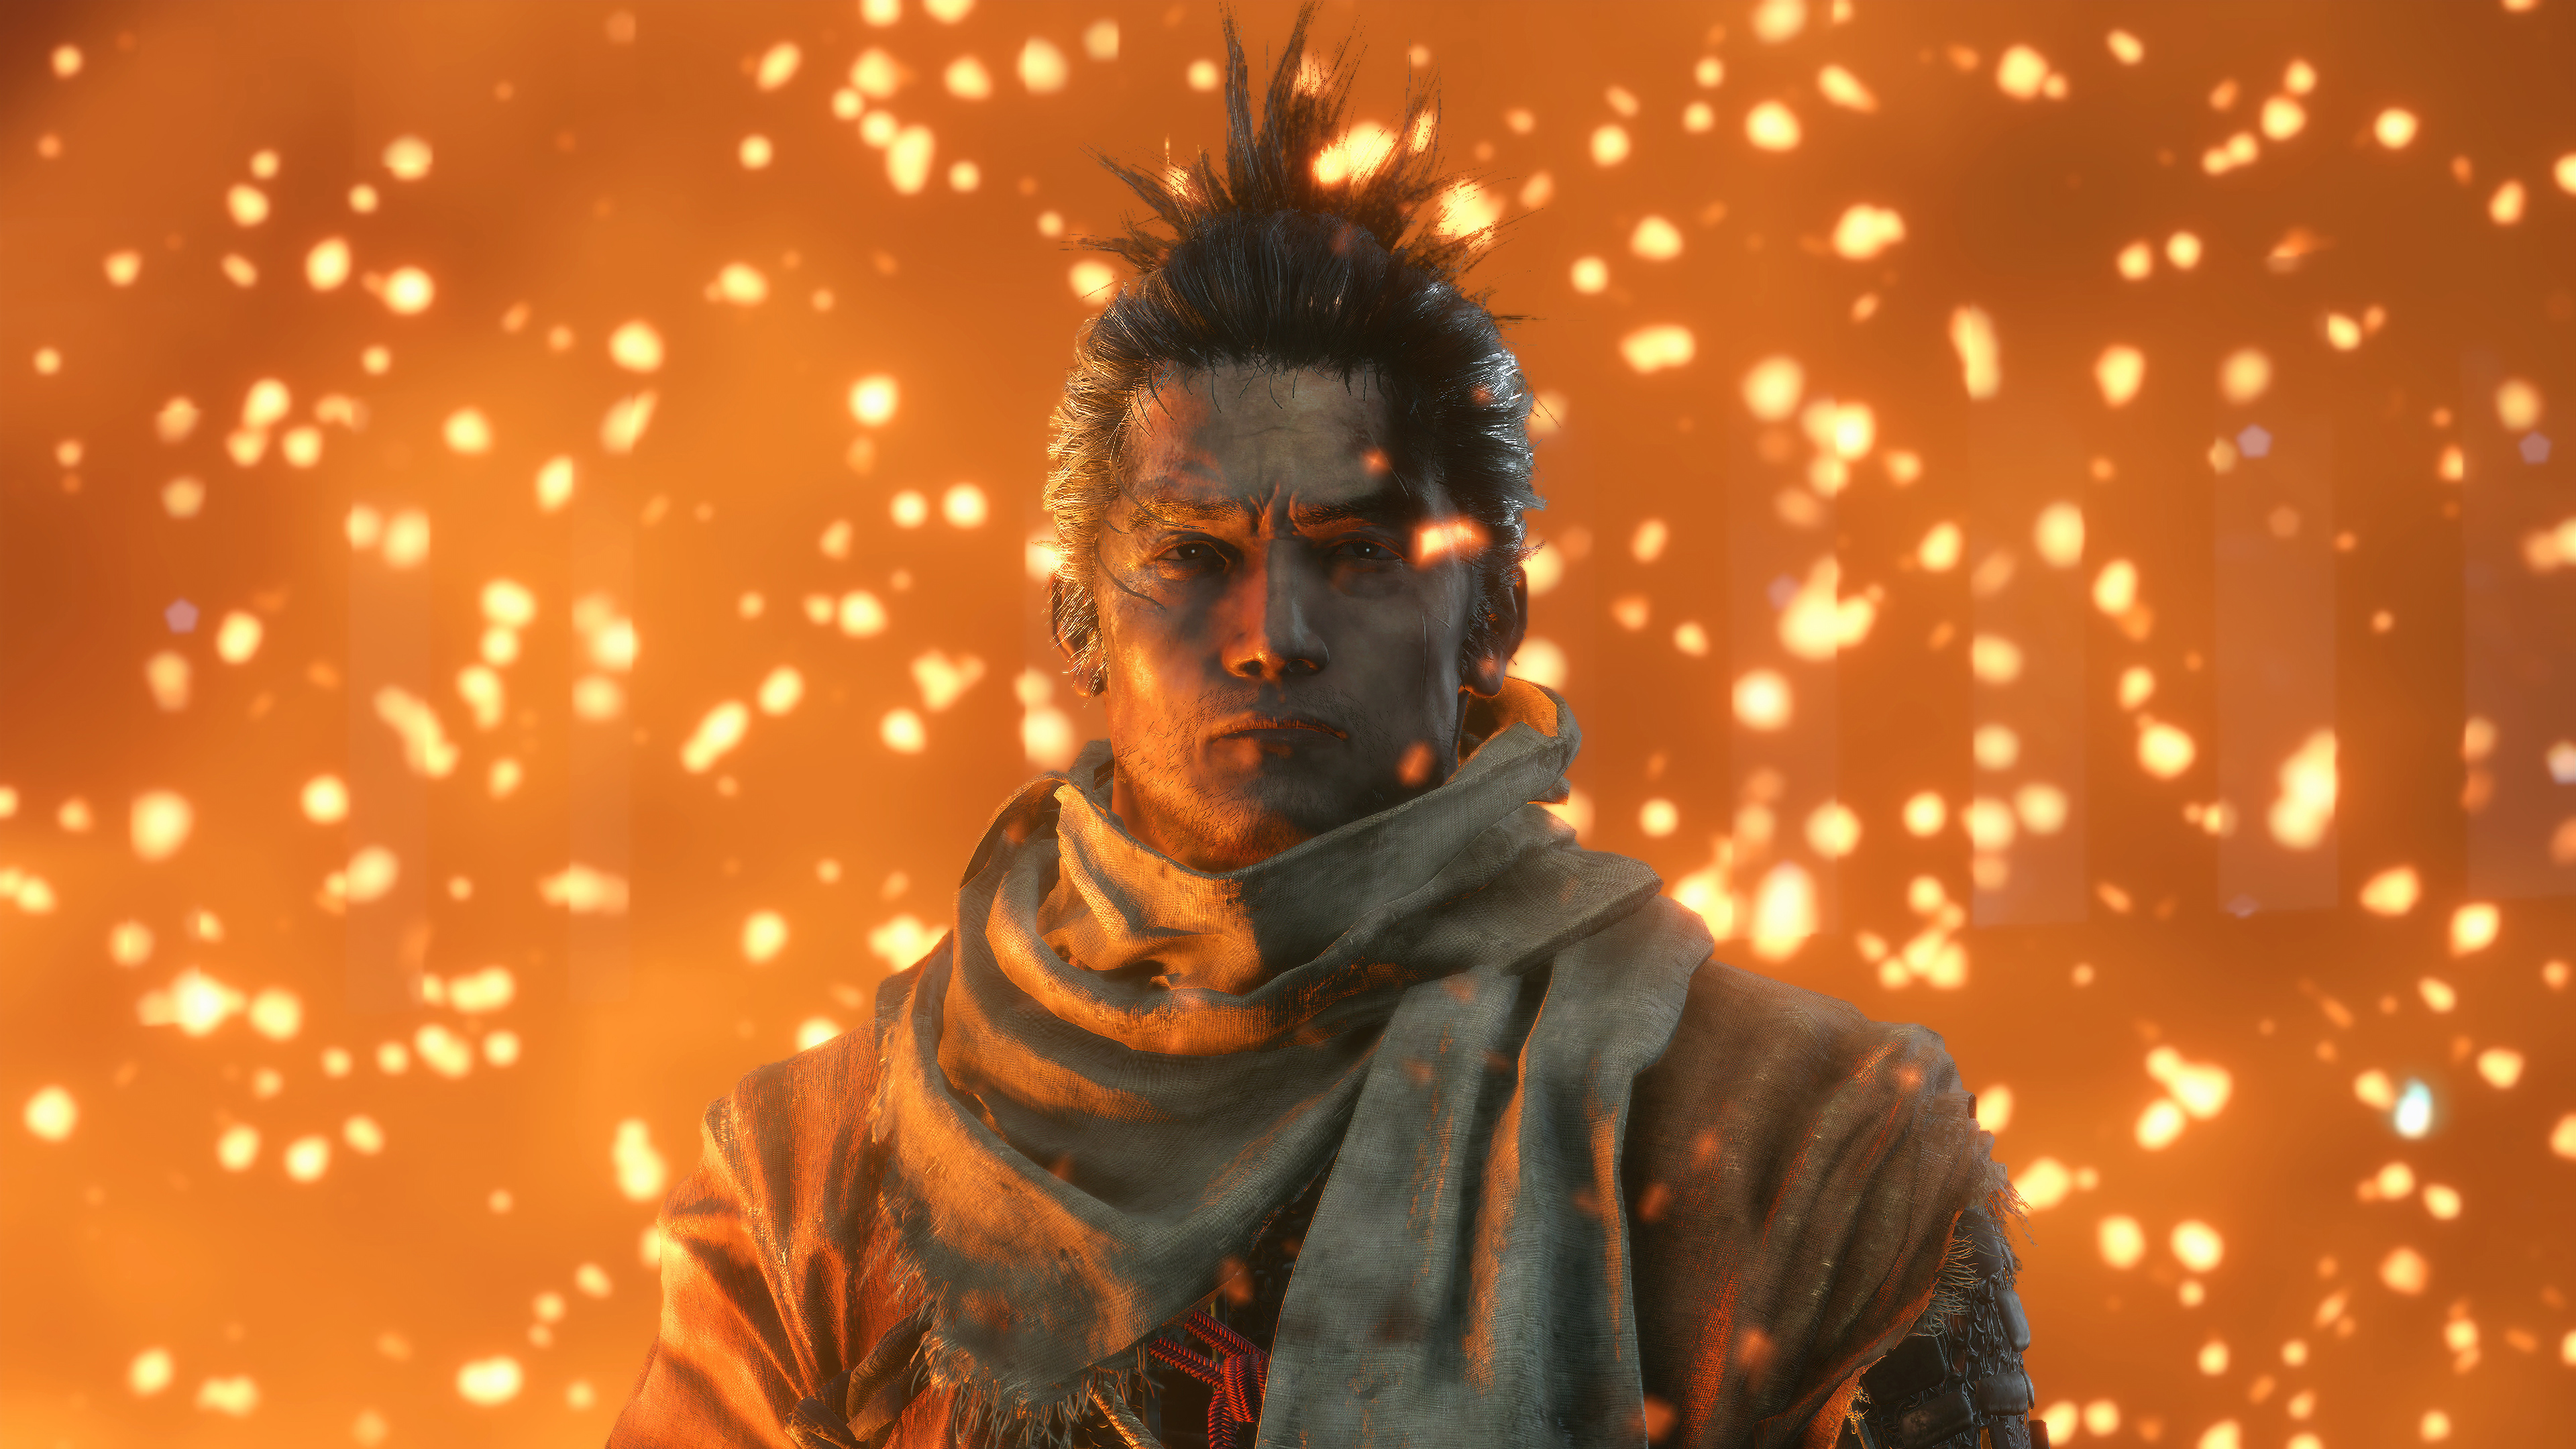 1336x768 Shinobi Sekiro Shadows Die Twice 4k Laptop Hd Hd 4k Wallpapers Images Backgrounds Photos And Pictures